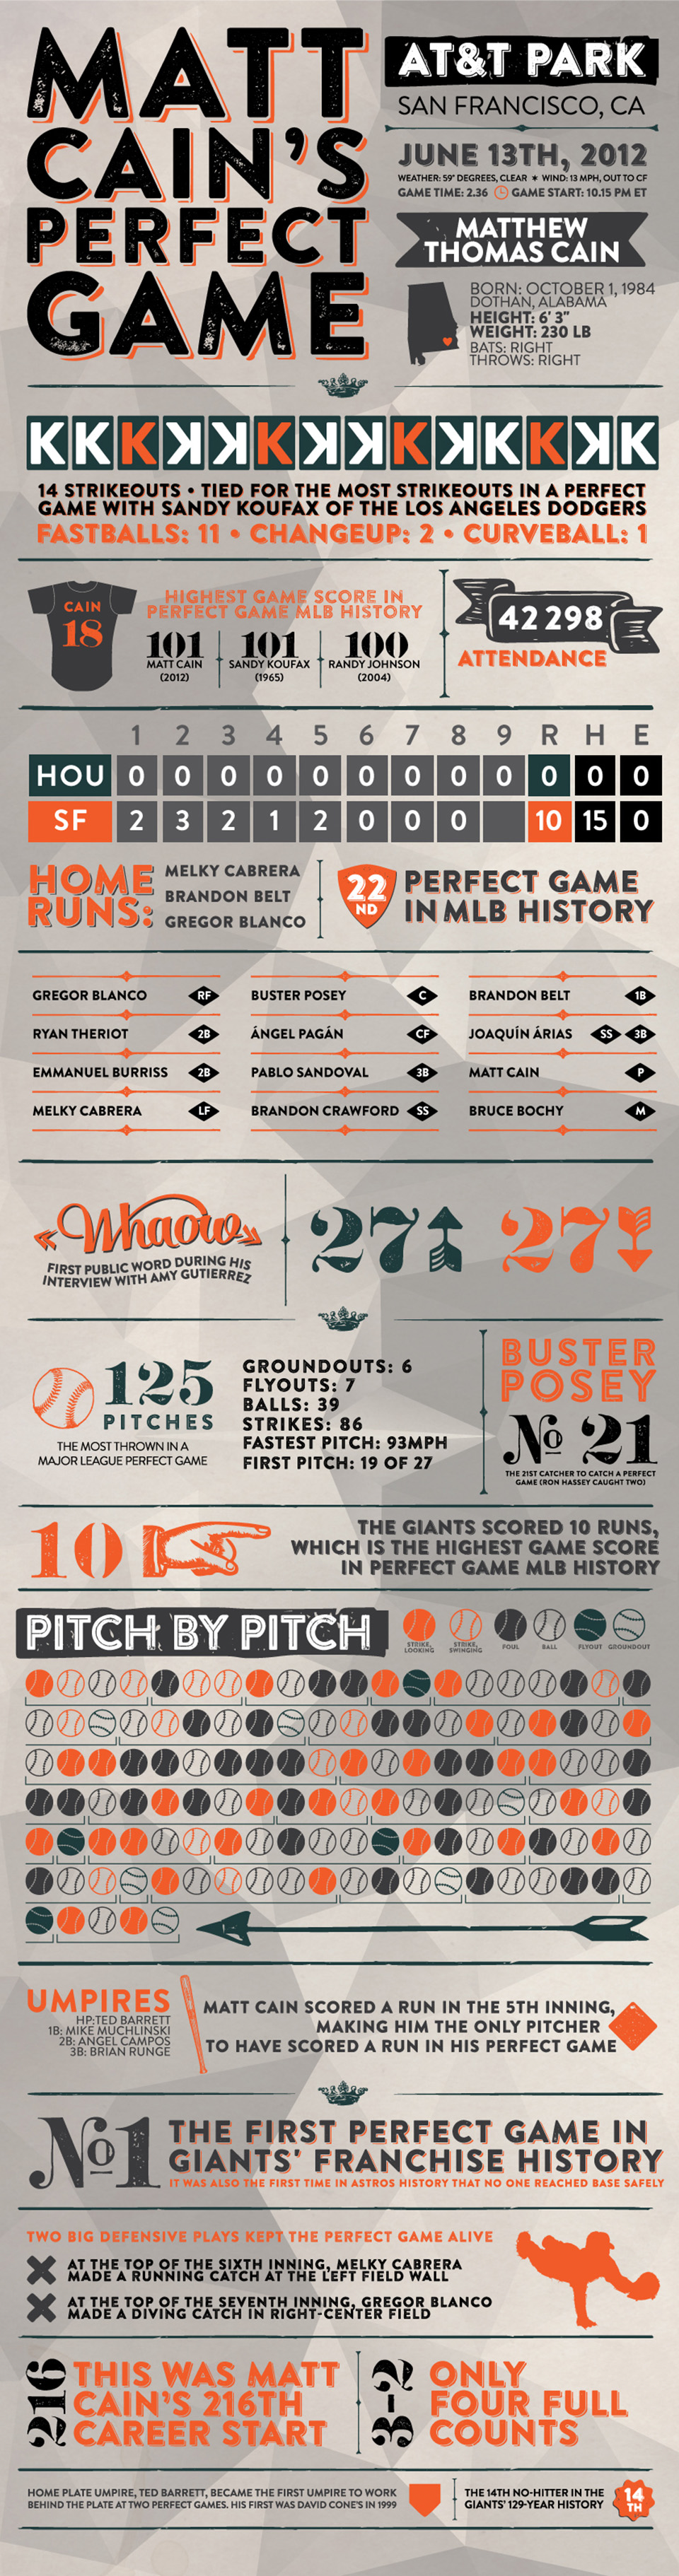 matt cain's perfect game - infographic